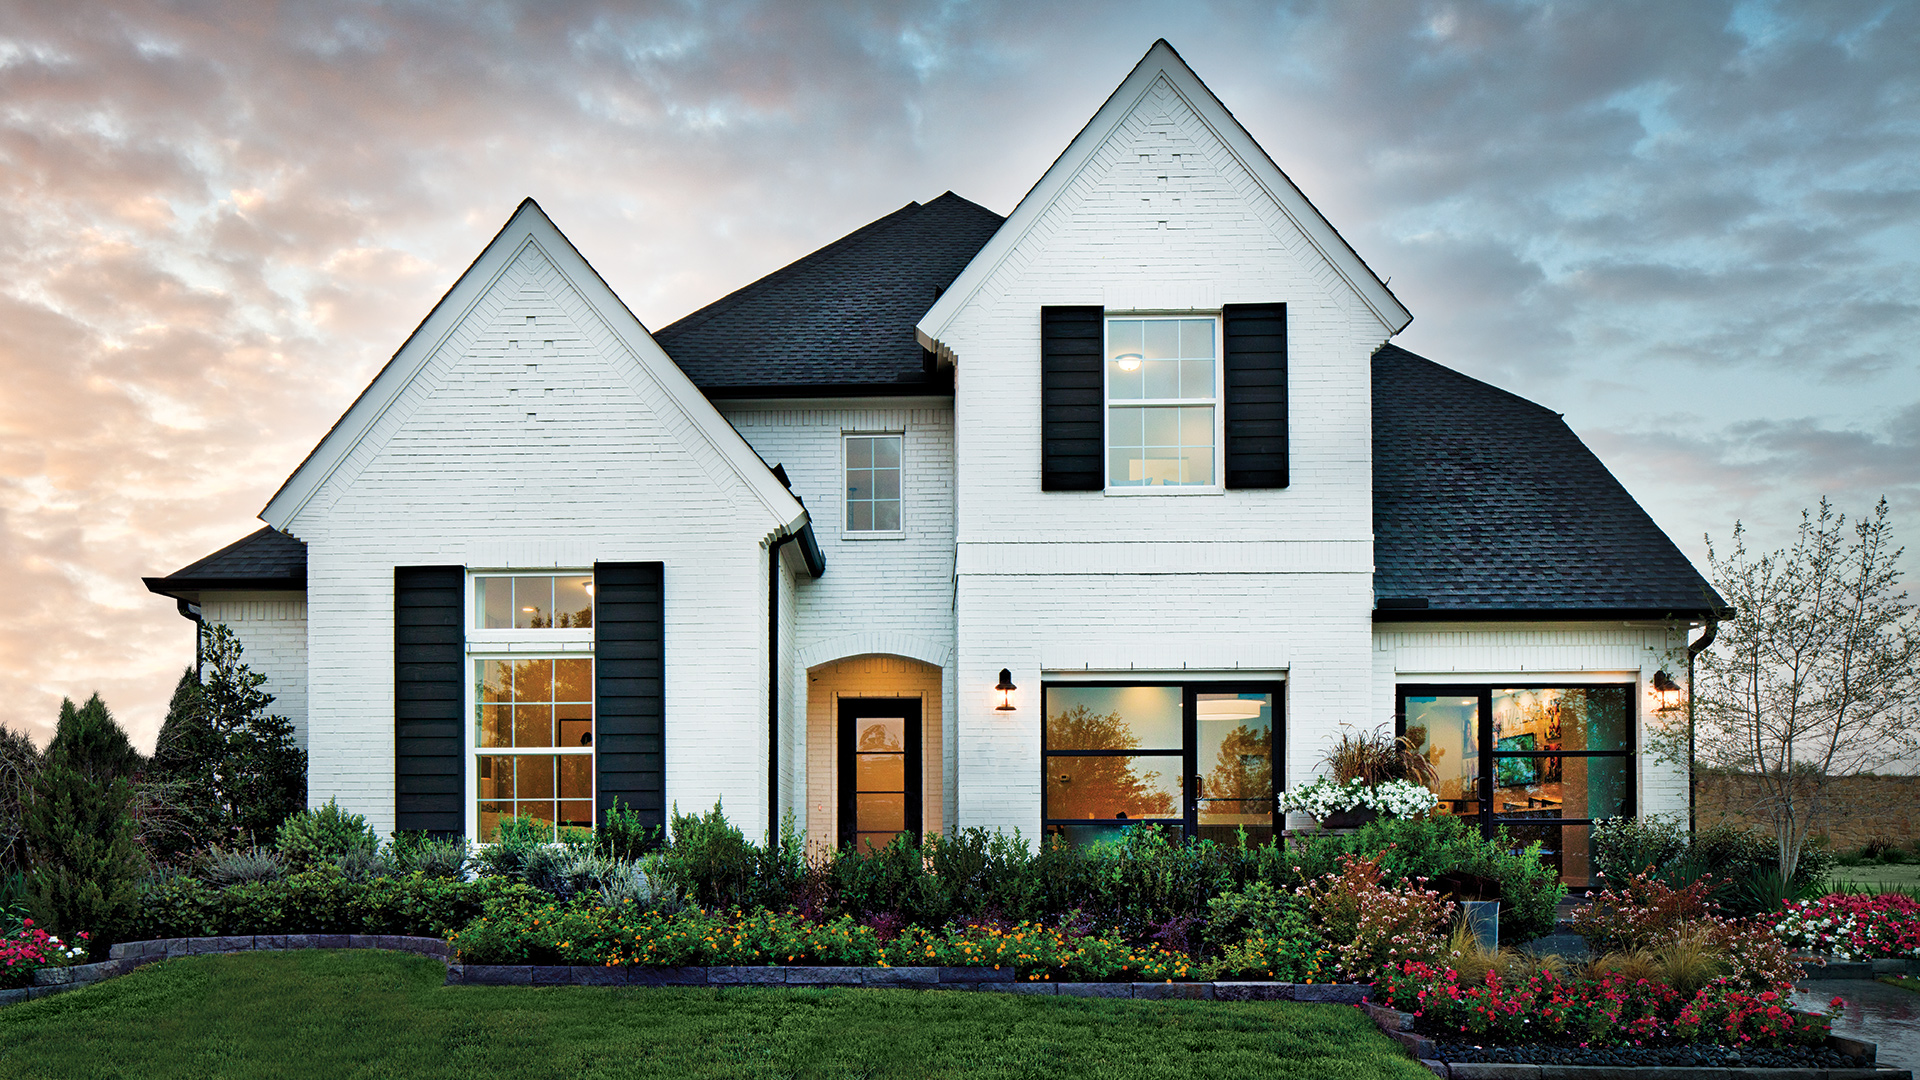 New Luxury Homes For Sale in Frisco, TX | Frisco Springs